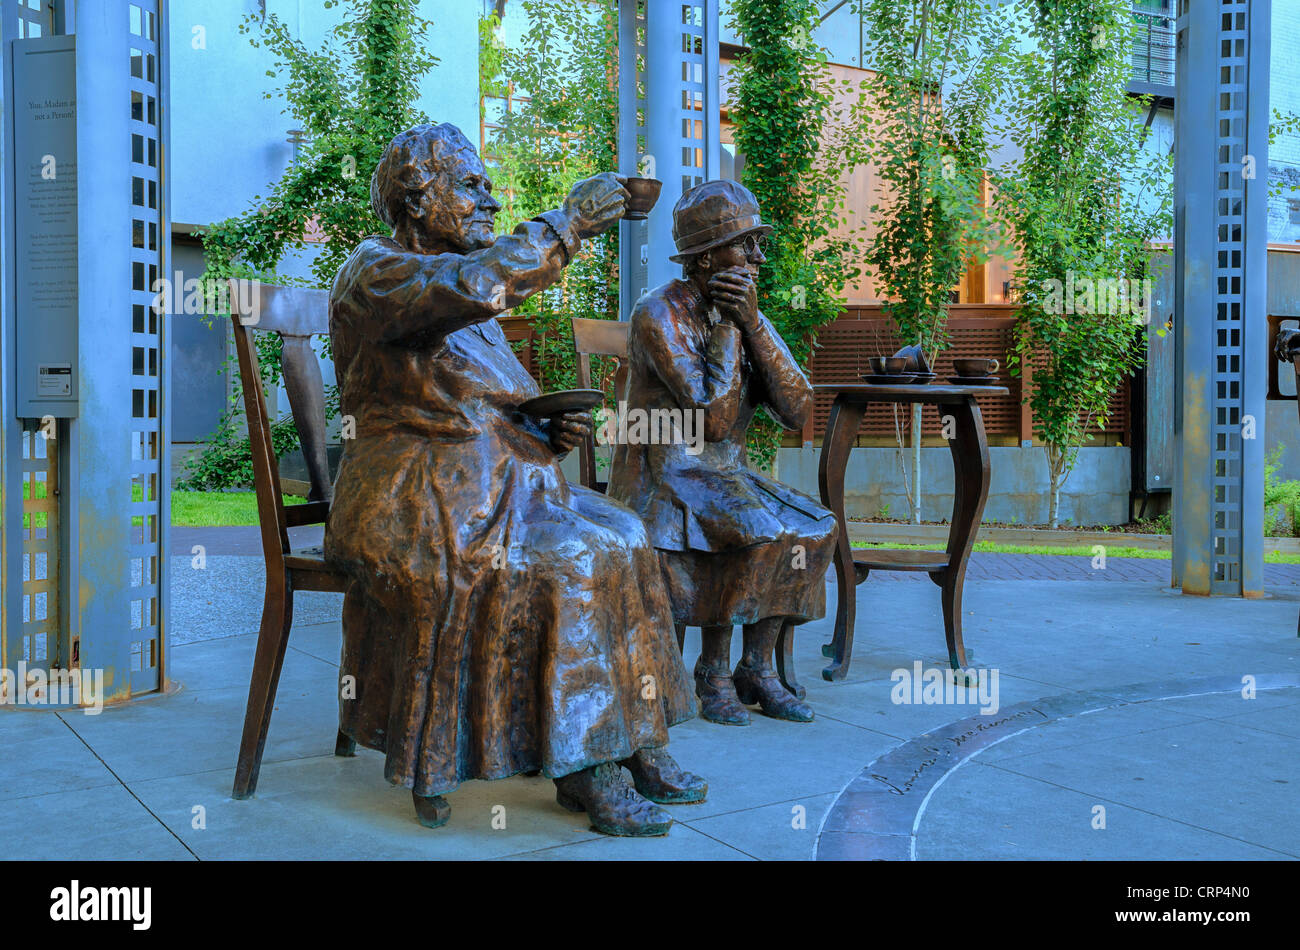 Famous Five statue. Larger than life bronzes,  Louise McKinney and Henrietta Muir Edwards pictured here. - Stock Image